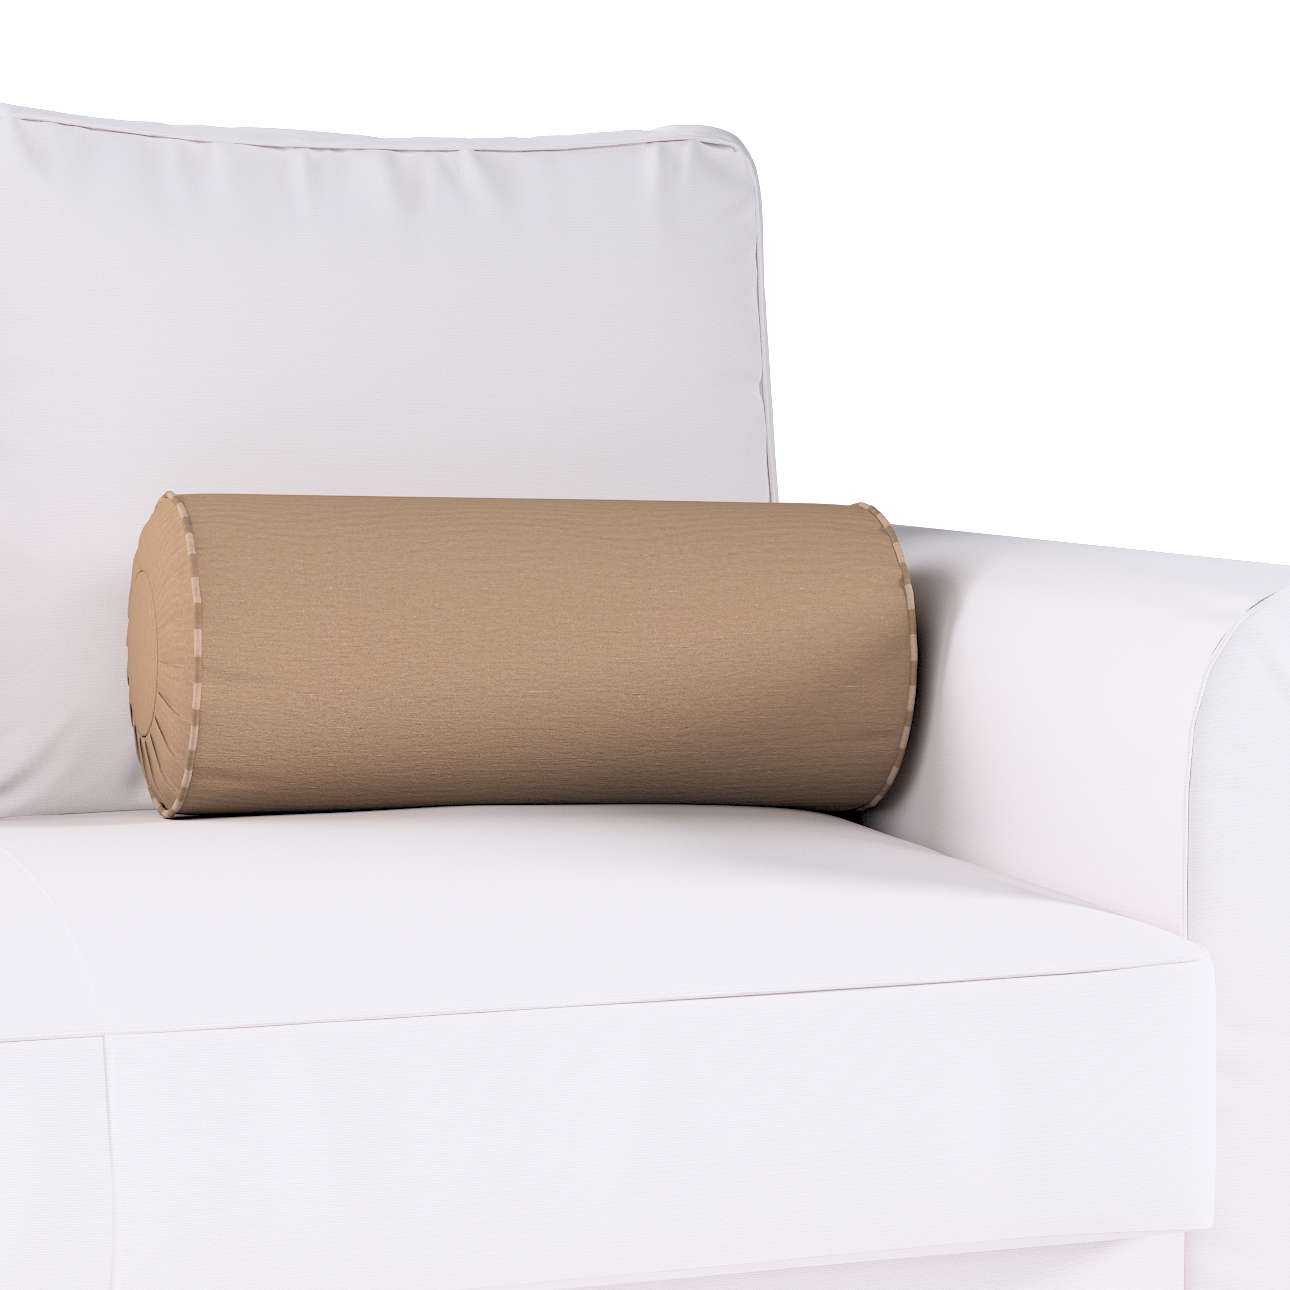 Bolster cushion with pleats in collection Quadro, fabric: 136-09